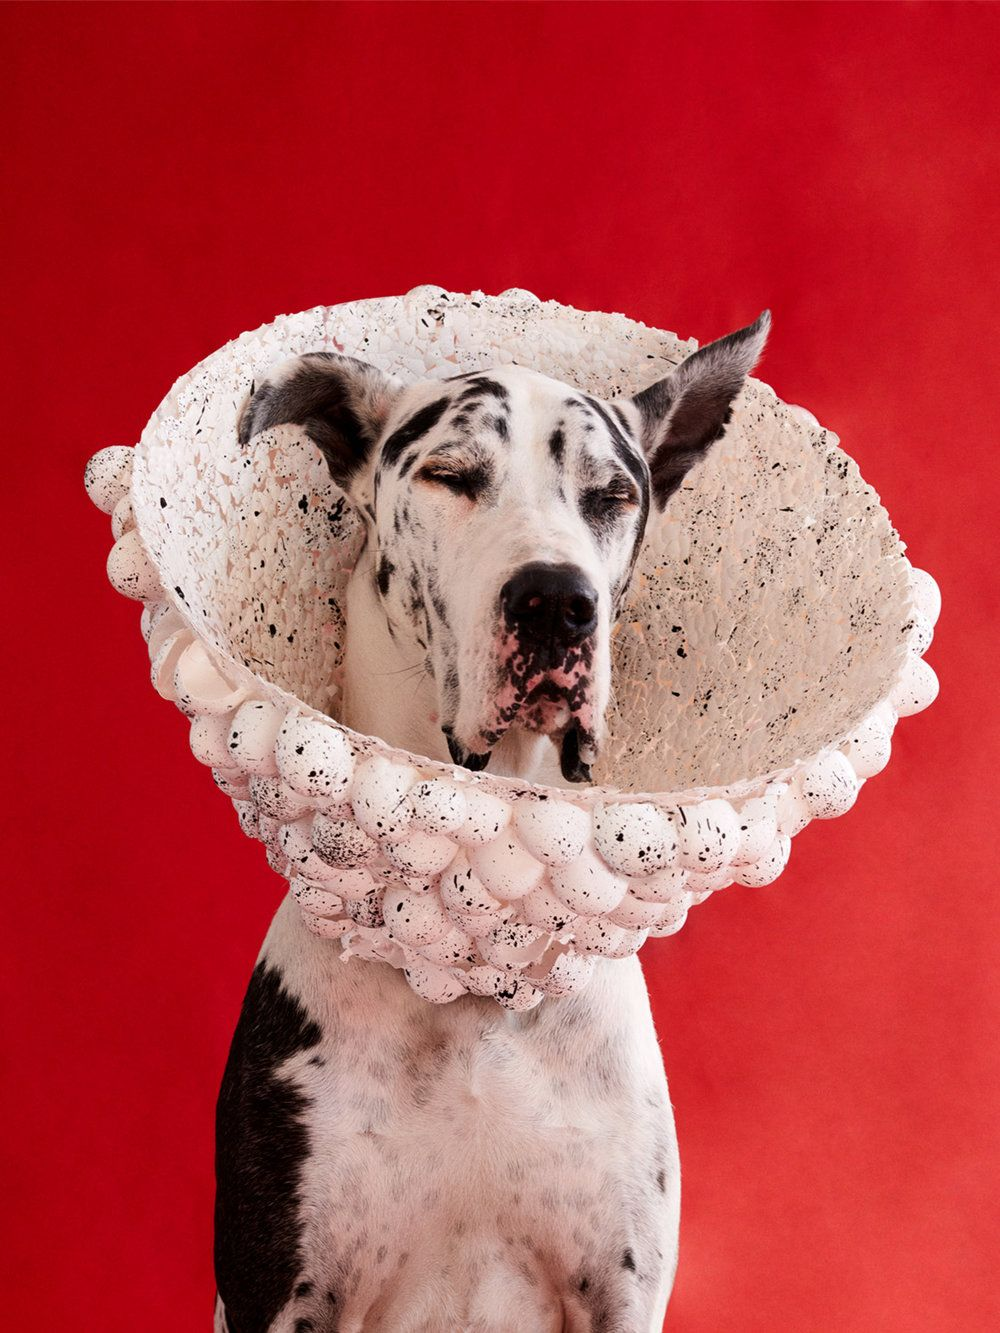 Photographer Winnie Au Captures The Unique Personalities Of Dogs Adorned In Sculptural Cones Of Shame Cone Of Shame Dog Cone Loose Idea